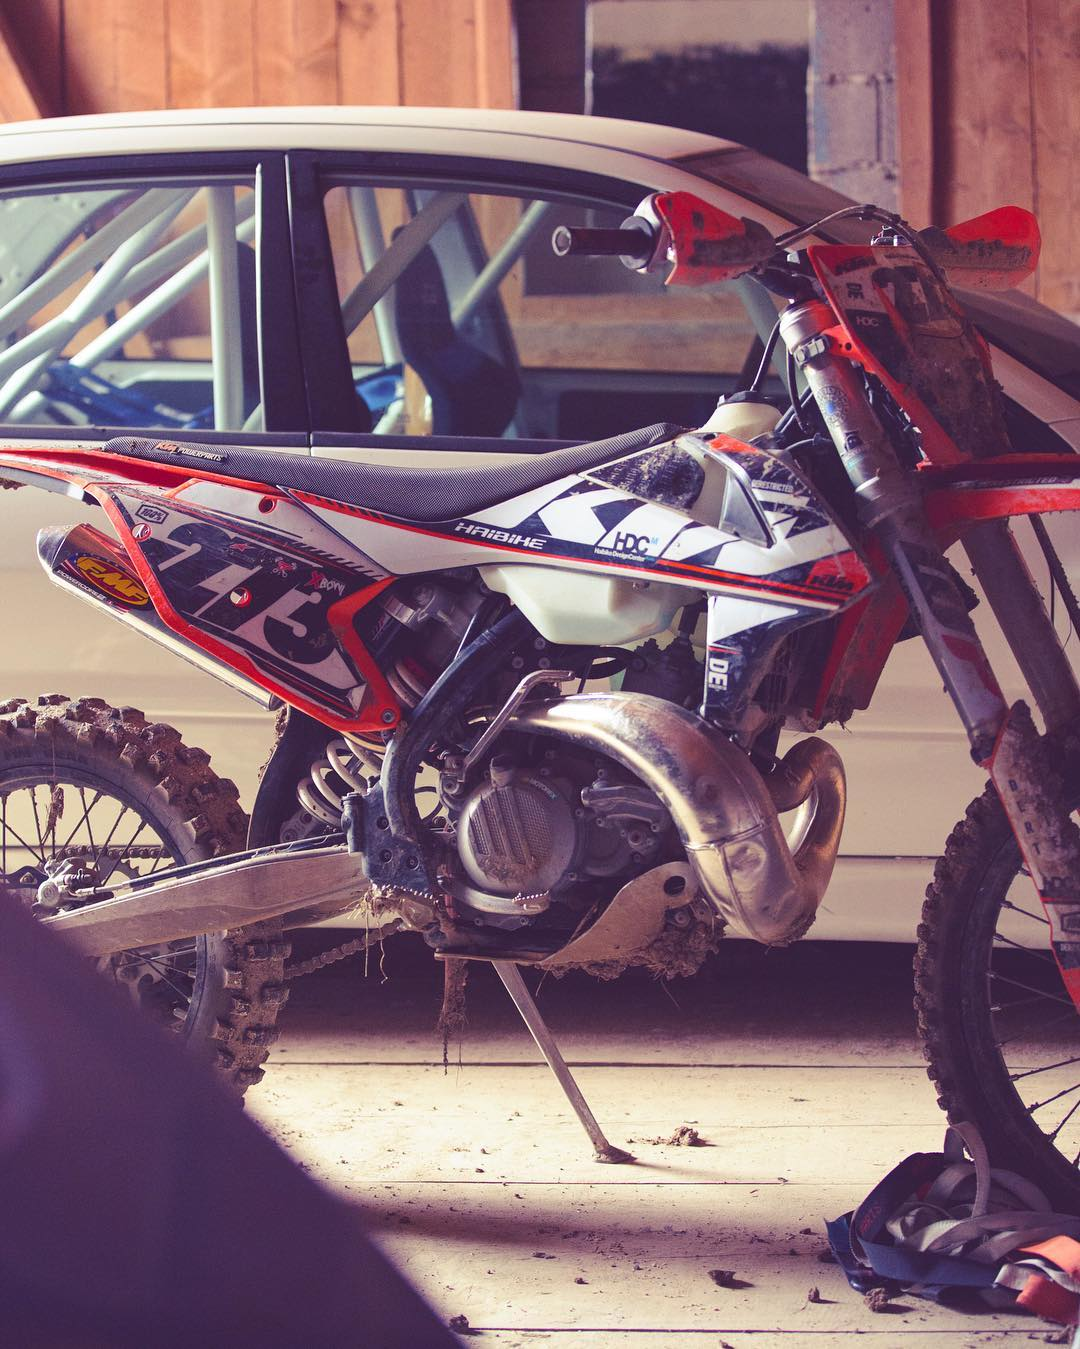 Sitting pretty (and a little dirty!) #ktm #300exc #twostroketuesday  #enduro #moto #ride100percent #de_portfolio @fmf73